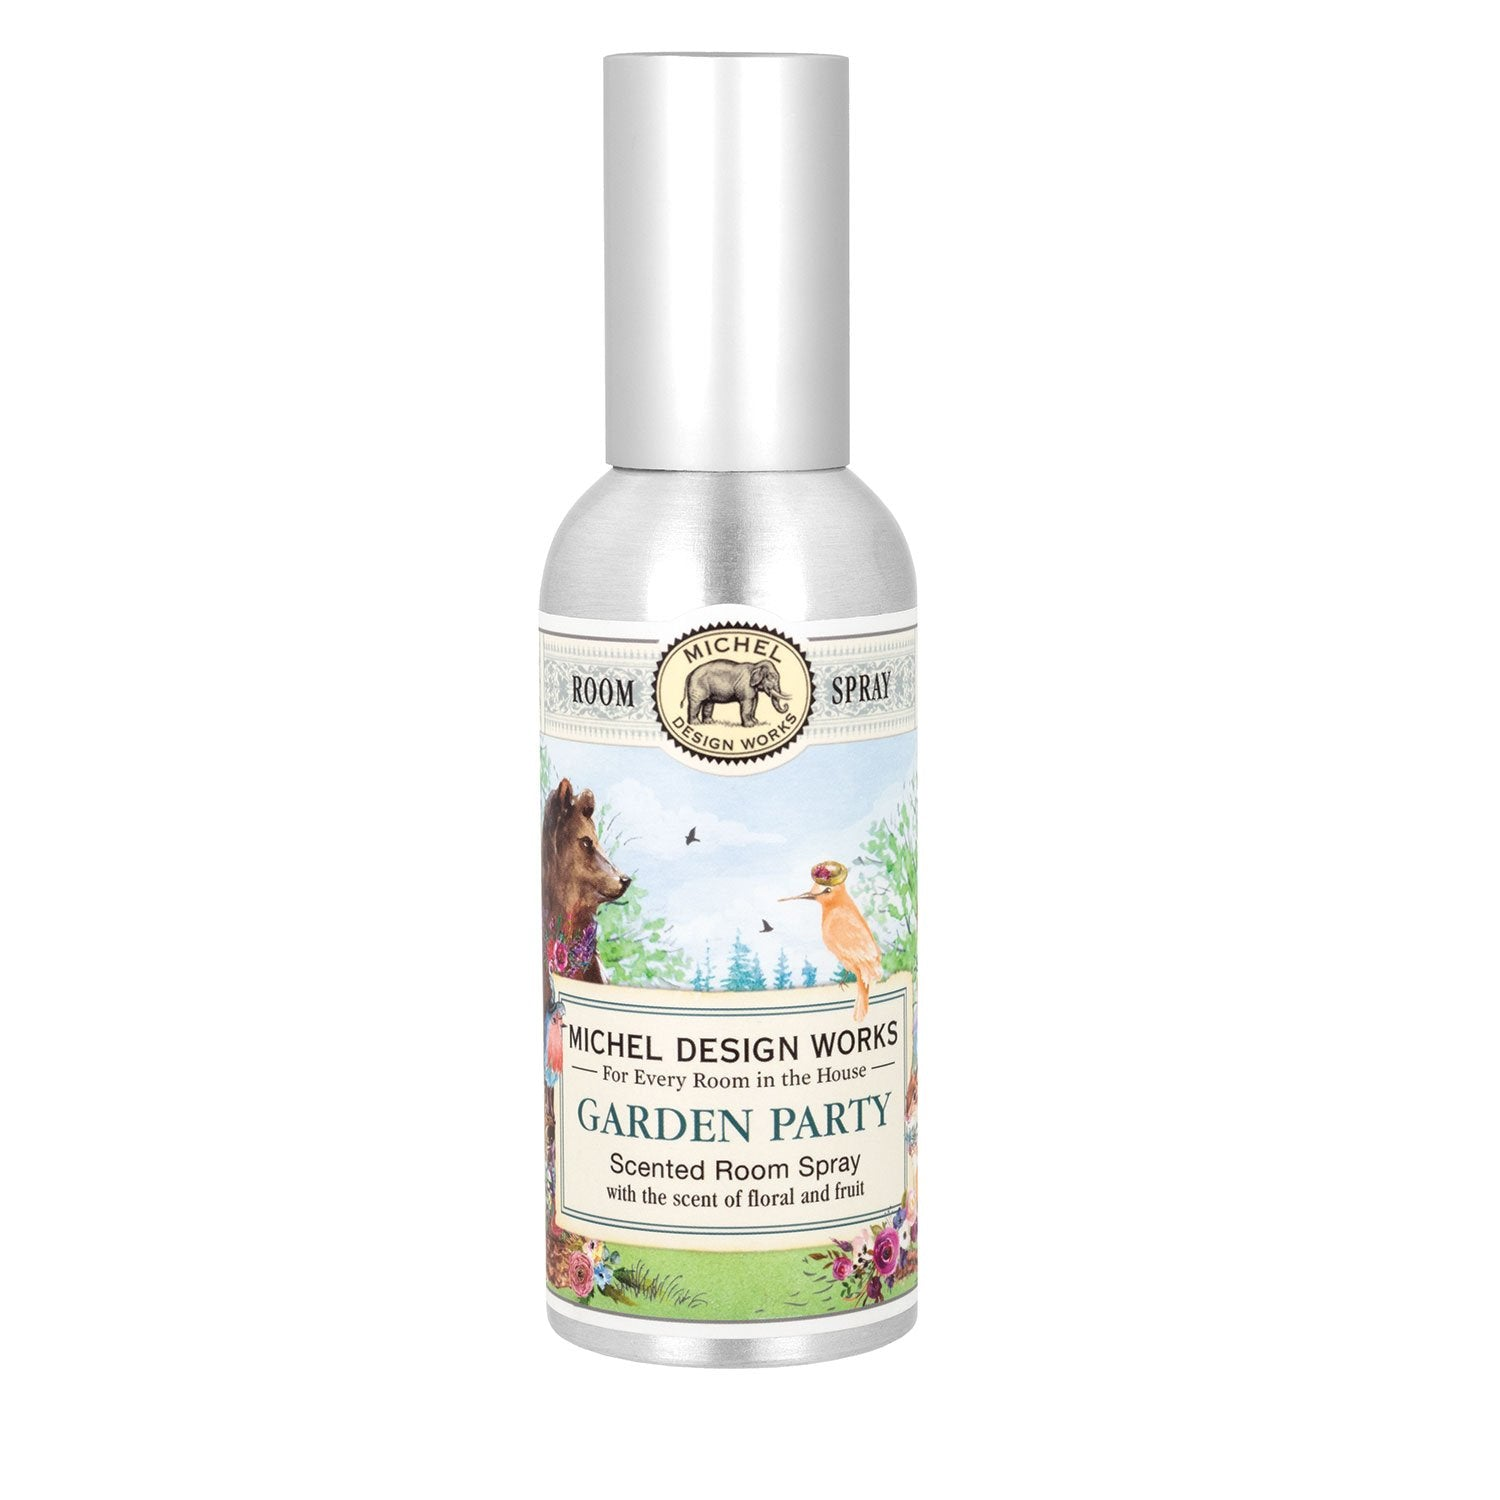 Garden Party Room Spray